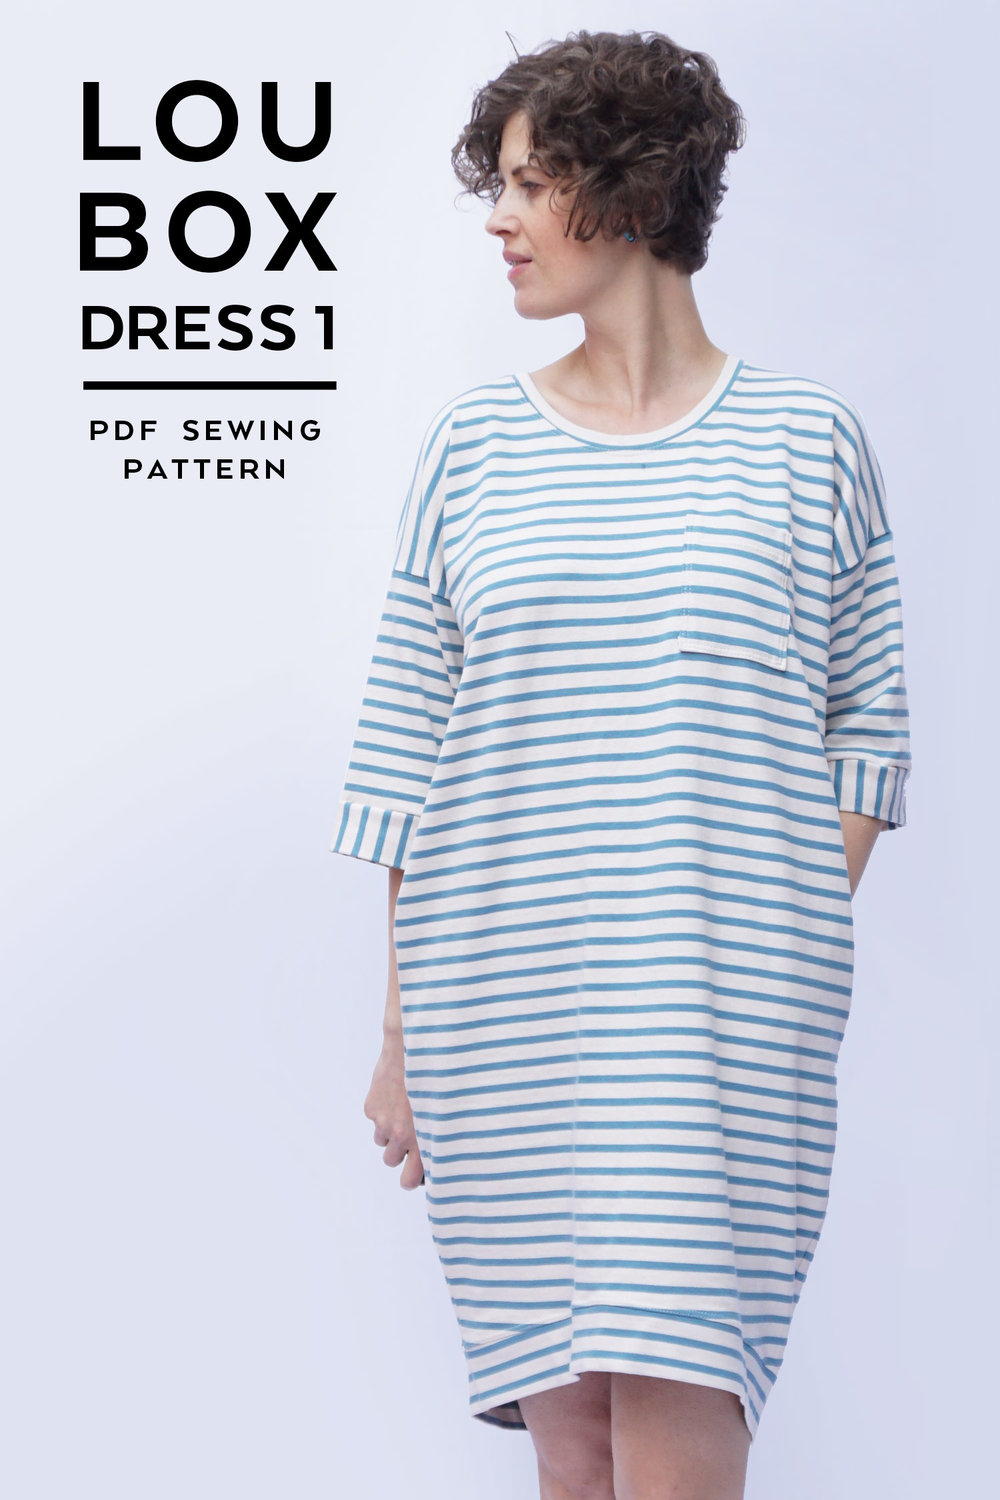 Introducing the Lou Box Dress 1 | Sew DIY